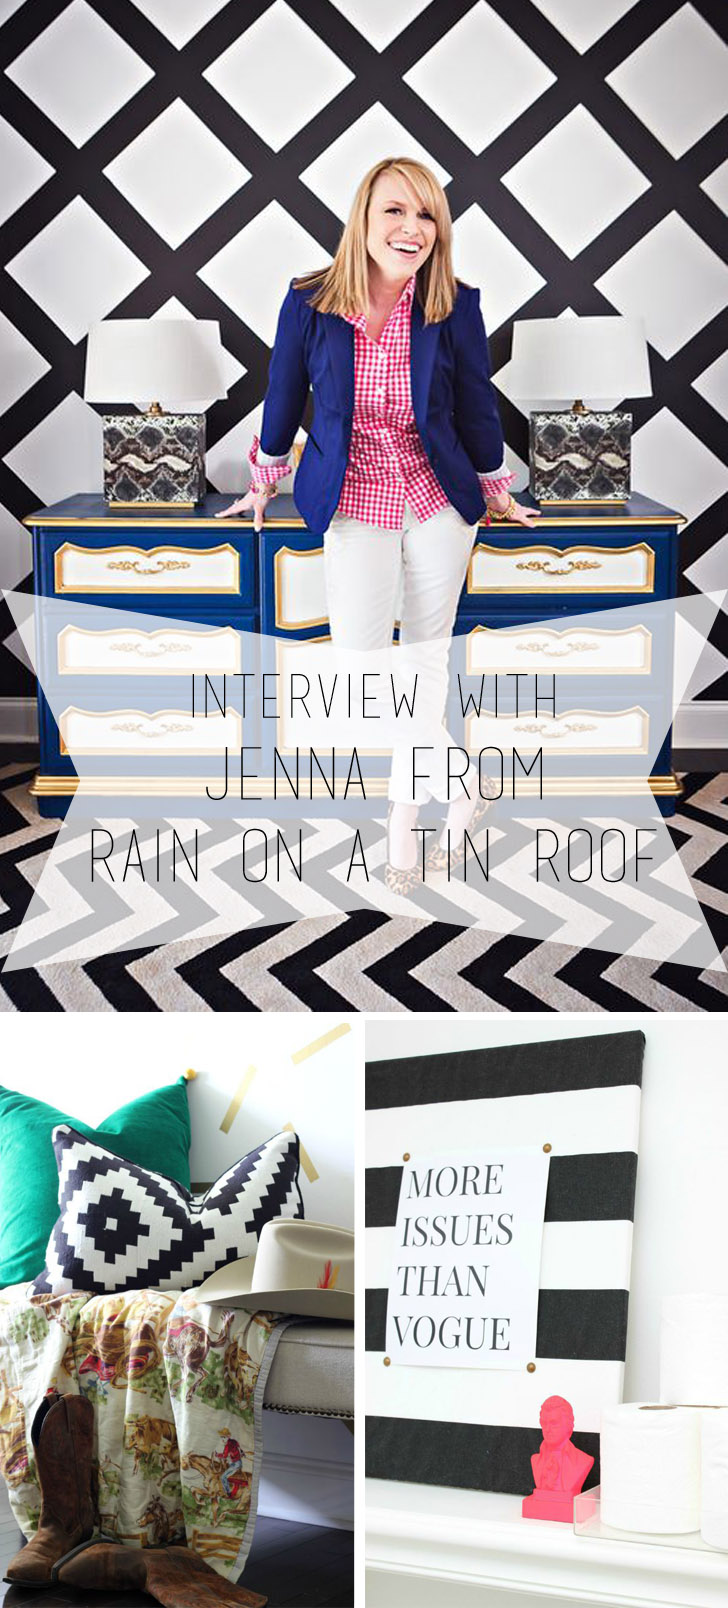 rain on a tin roof interview